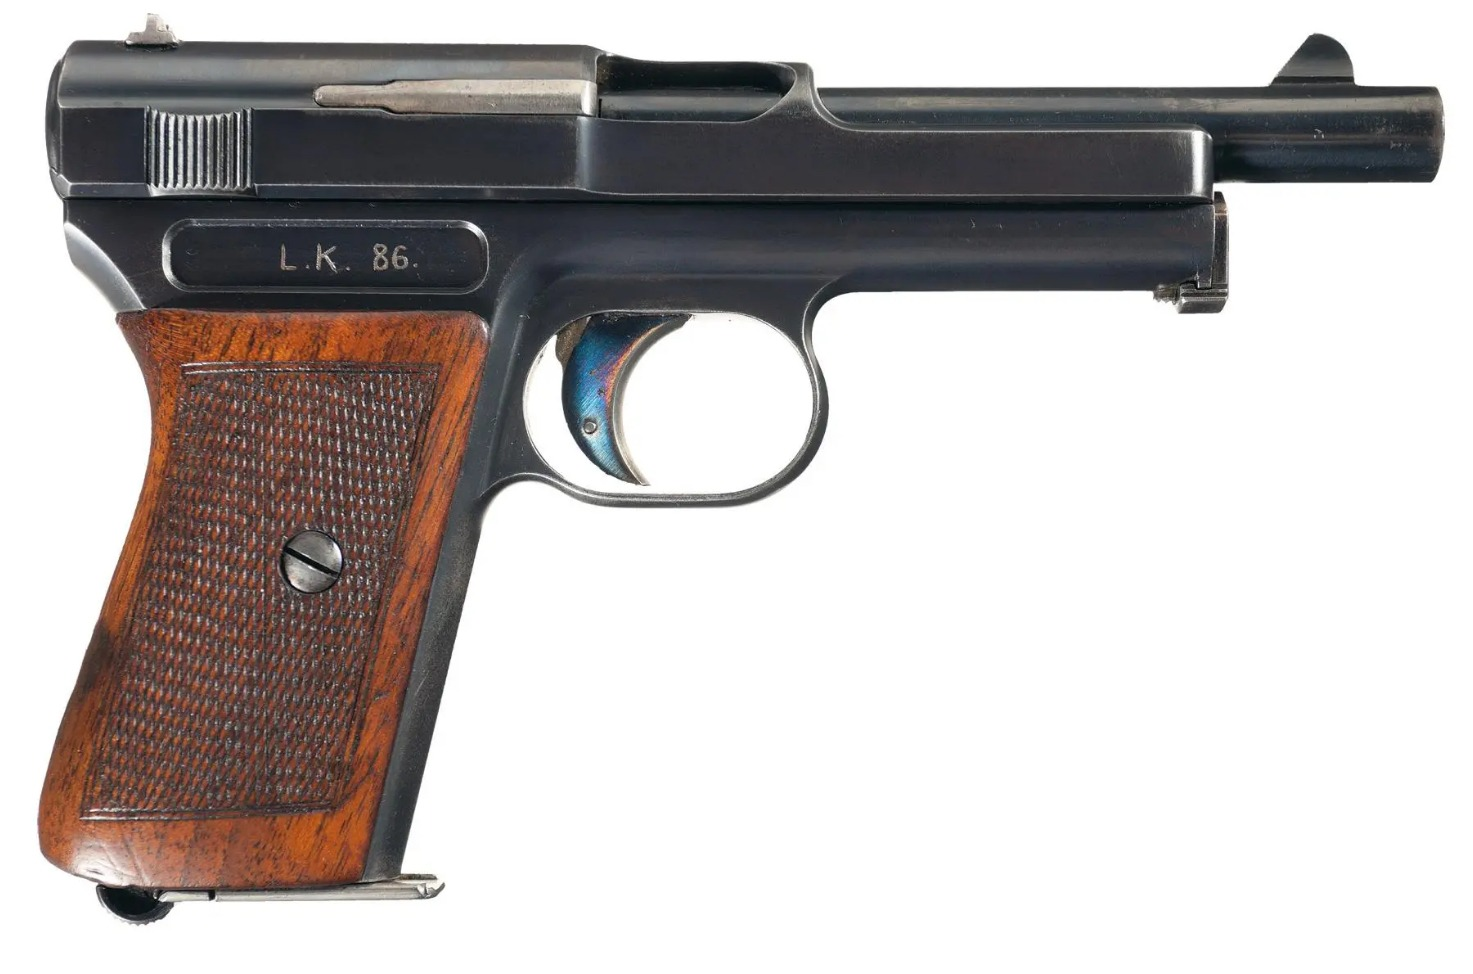 Mauser M1914 humpback long barrel automatic pistol